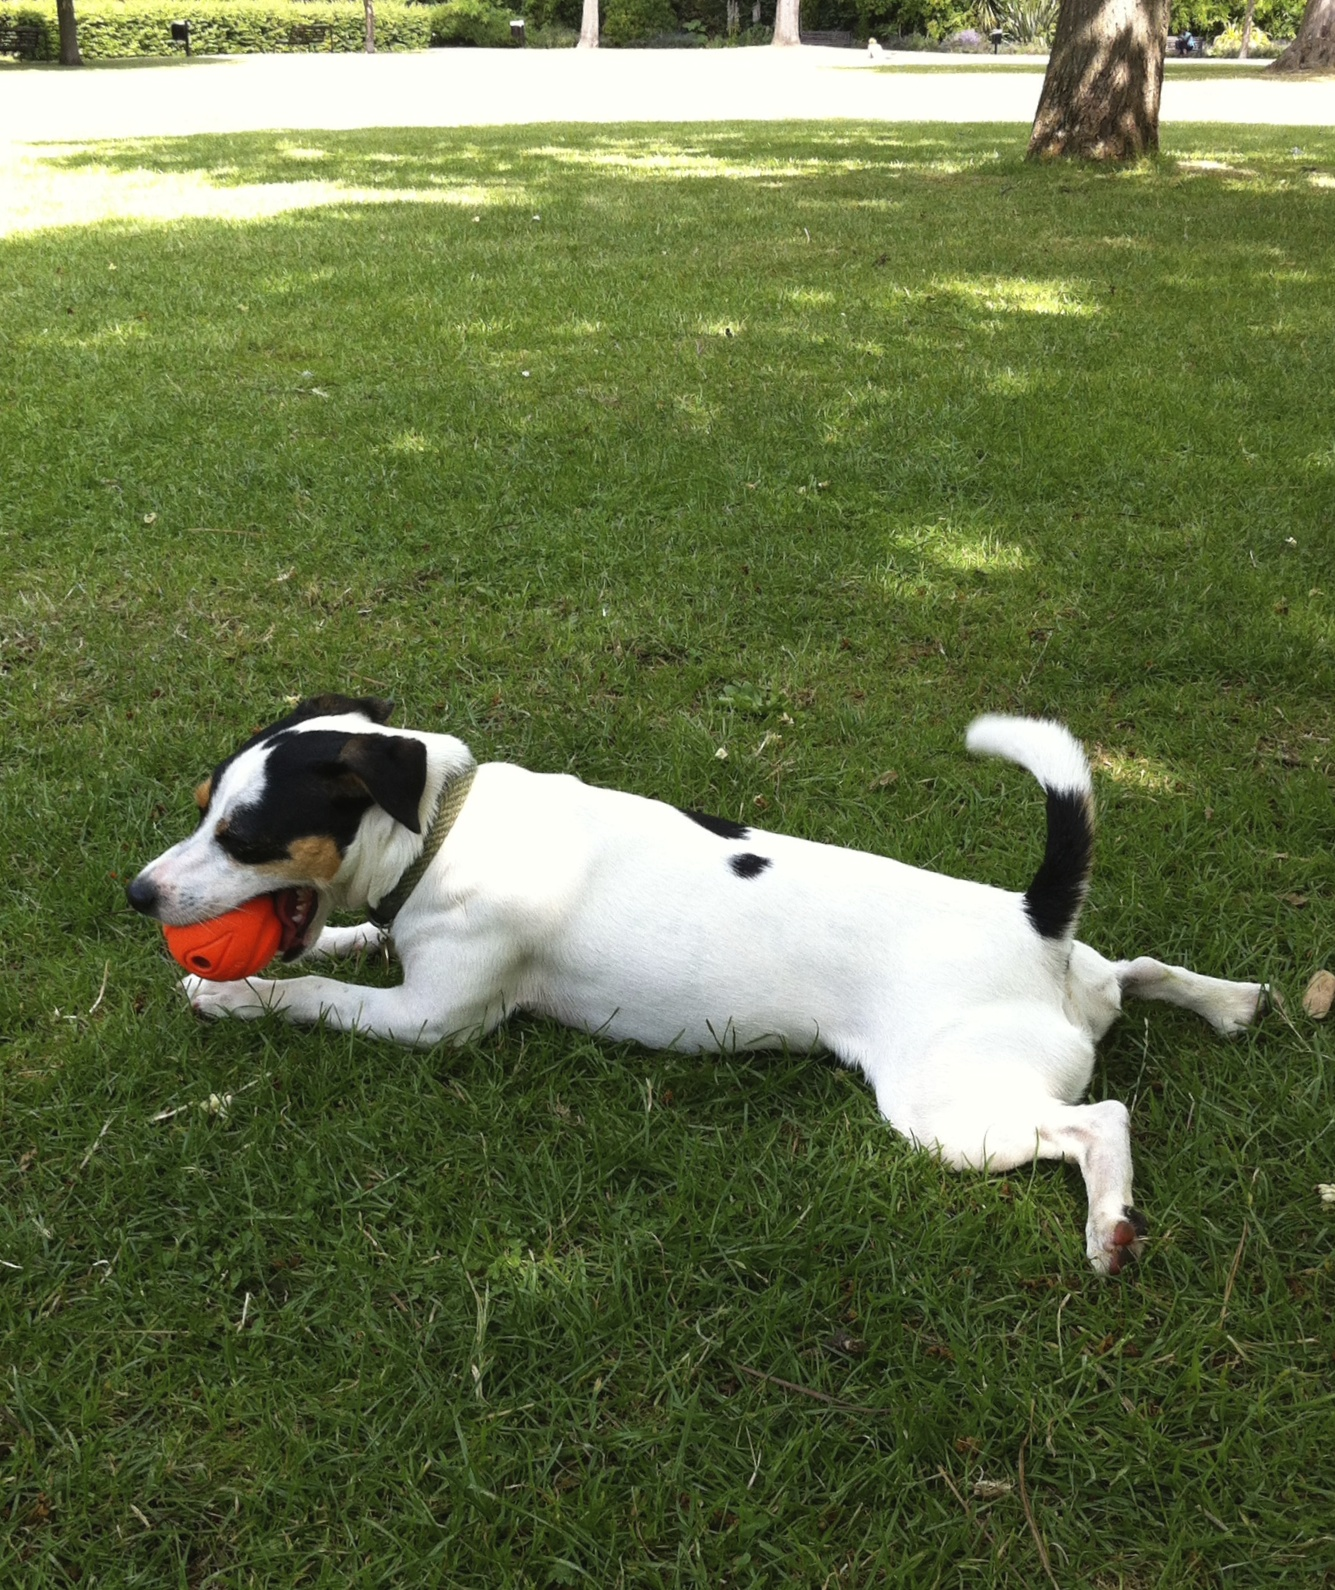 If there are no leaves around I can see the orange ball, especially when it's moving. When I get too hot from playing, I lay down in the shade. When I pant,the cool breeze on my tongue helps me cool off too. It's hard to pant with a ball in your mouth!